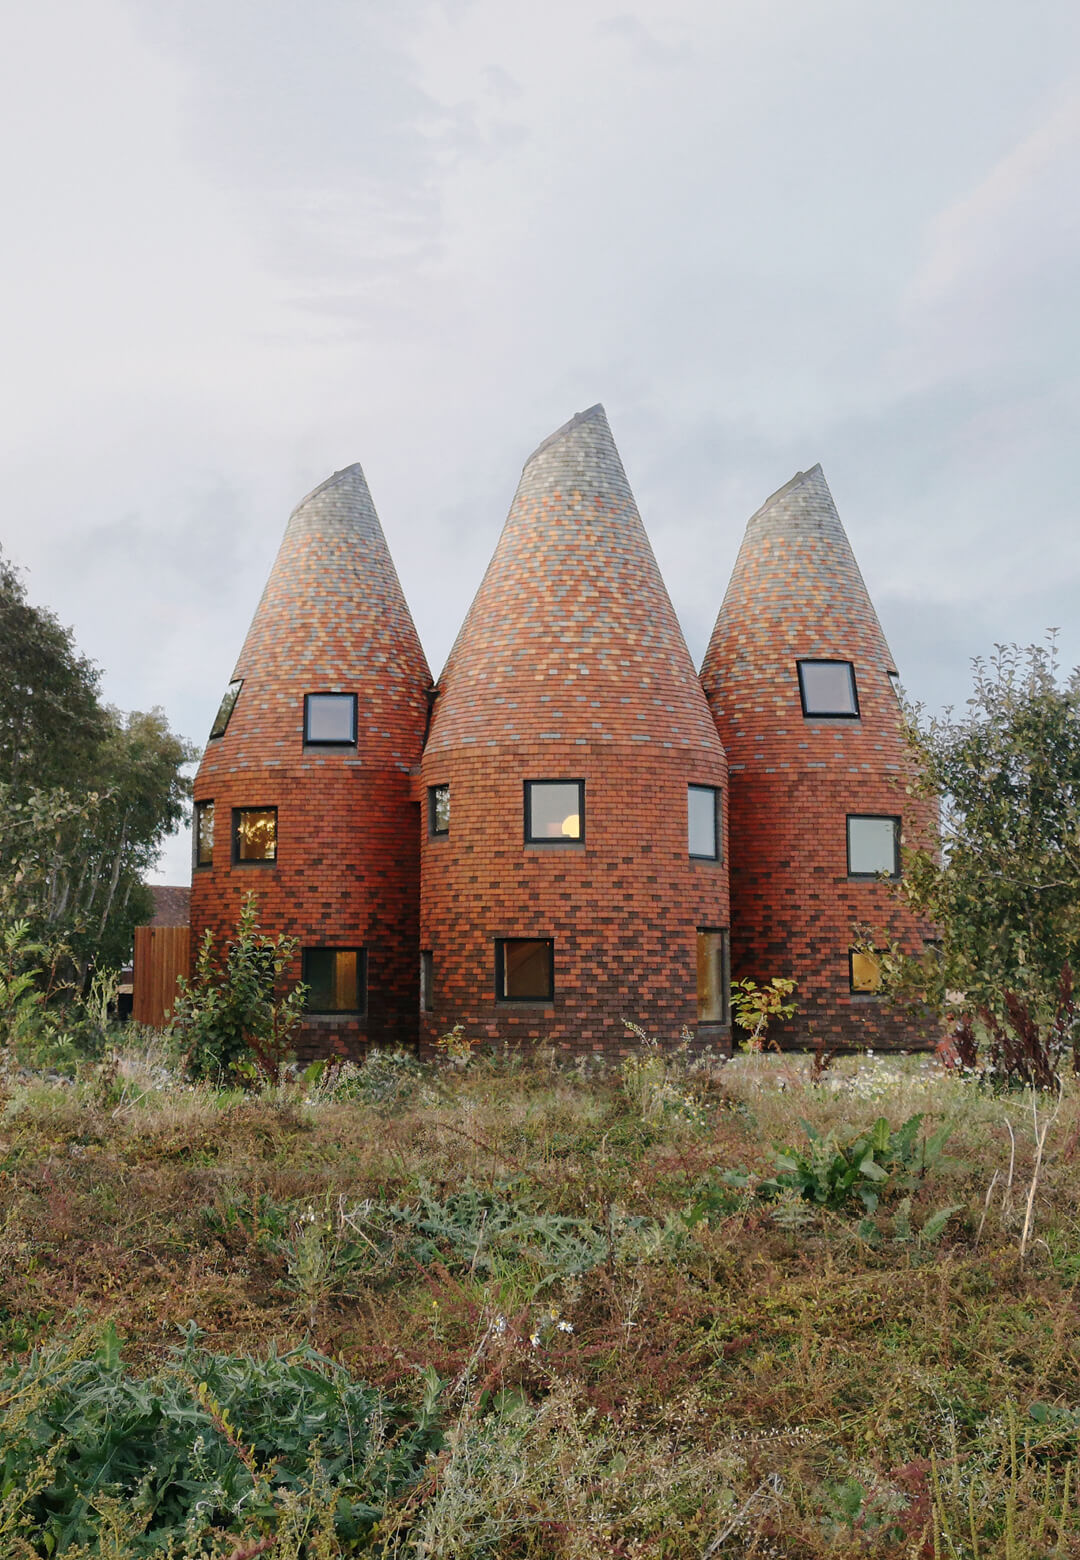 The Bumpers Oast house inspired from the Kentish style vernacular houses in UK  | Bumpers Oast house| ACME architects | STIRworld